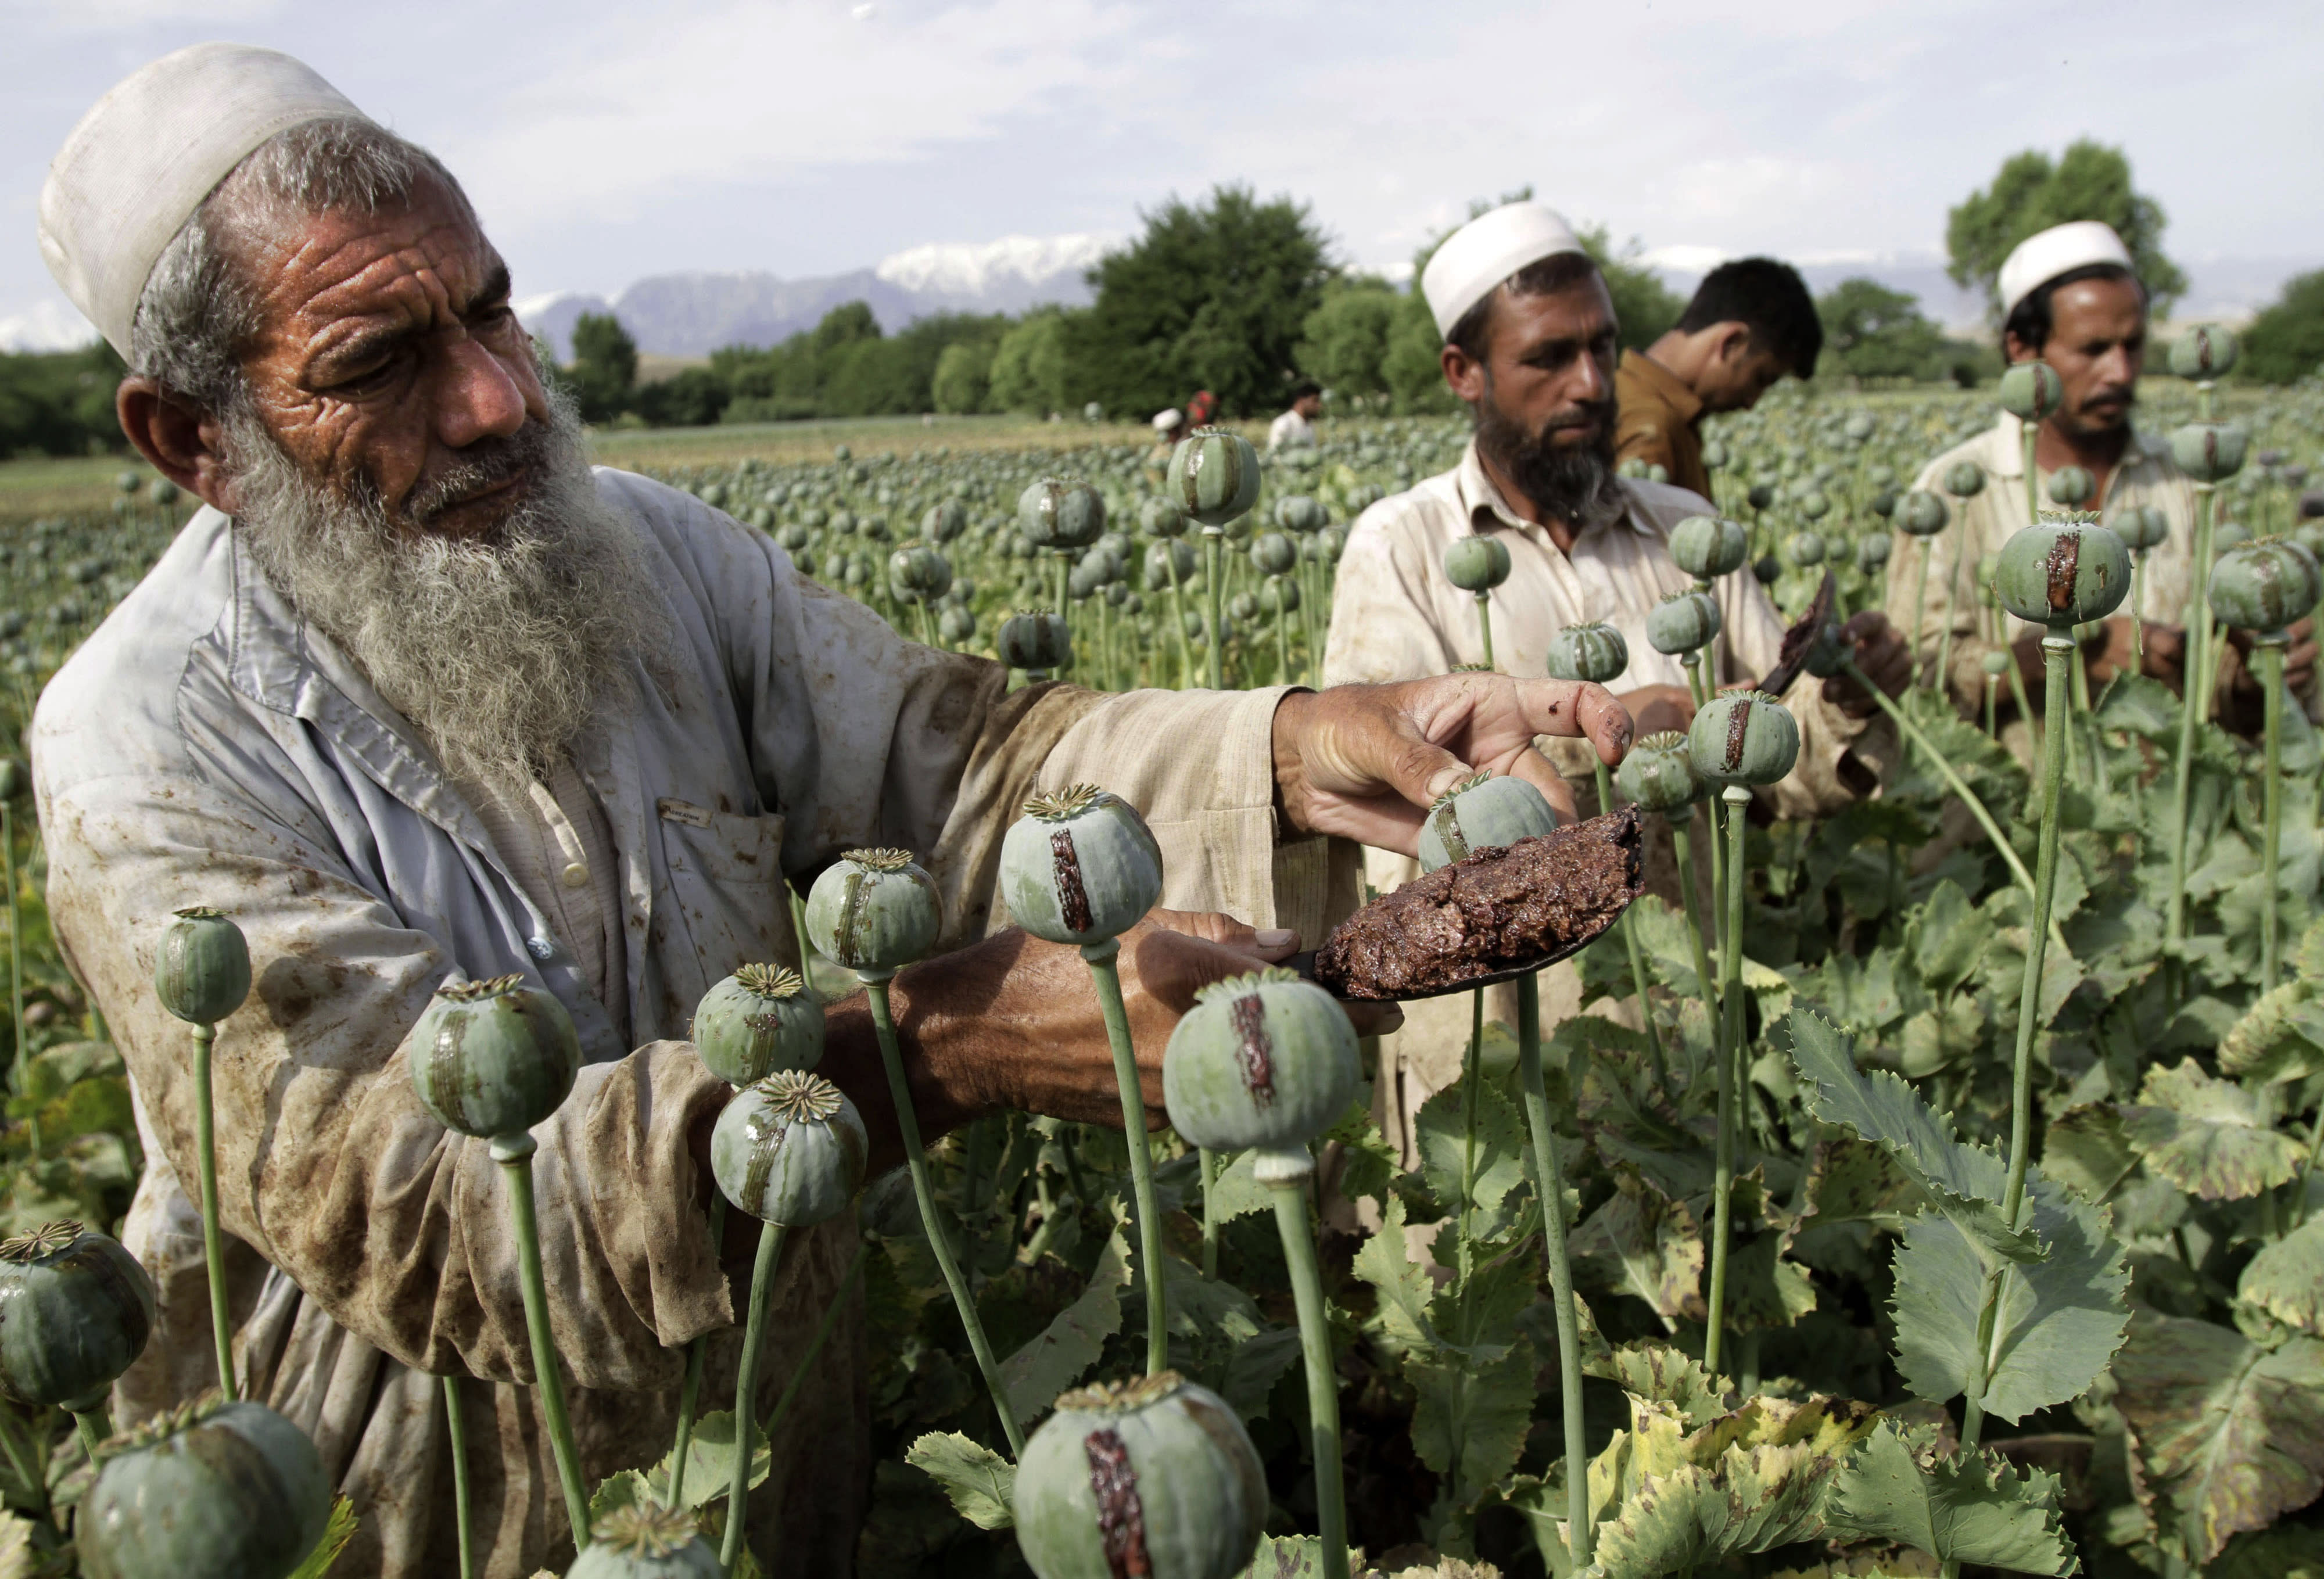 FILE - In this May 10, 2013 file photo, Afghan farmers collect raw opium as they work in a poppy field in Khogyani district of Jalalabad, east of Kabul, Afghanistan. Afghanistan's opium production surged in 2013 to record levels, despite 12 years of international efforts to wean the country off the narcotics trade, according to a report released Wednesday by the U.N.'s drug control agency. (AP Photo/Rahmat Gul, File)